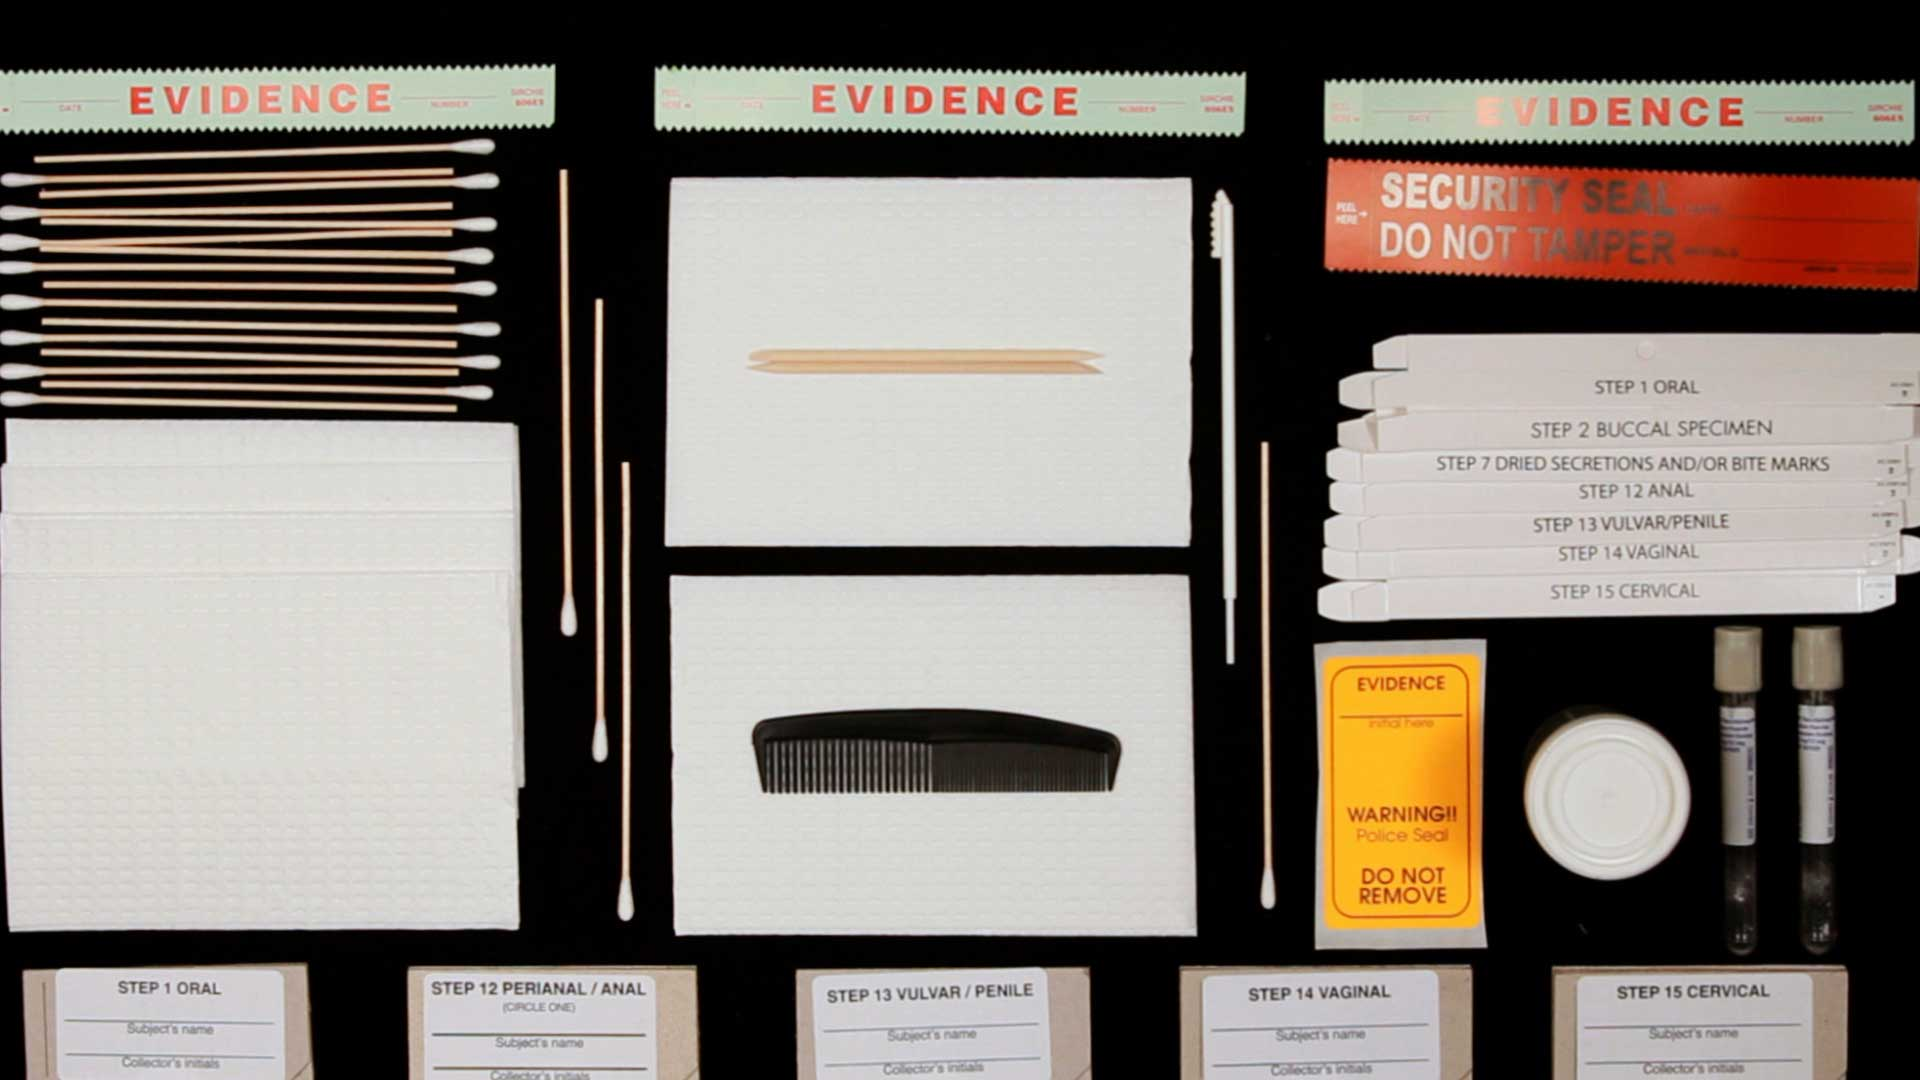 Here's What Happens When You Get a Rape Kit Exam